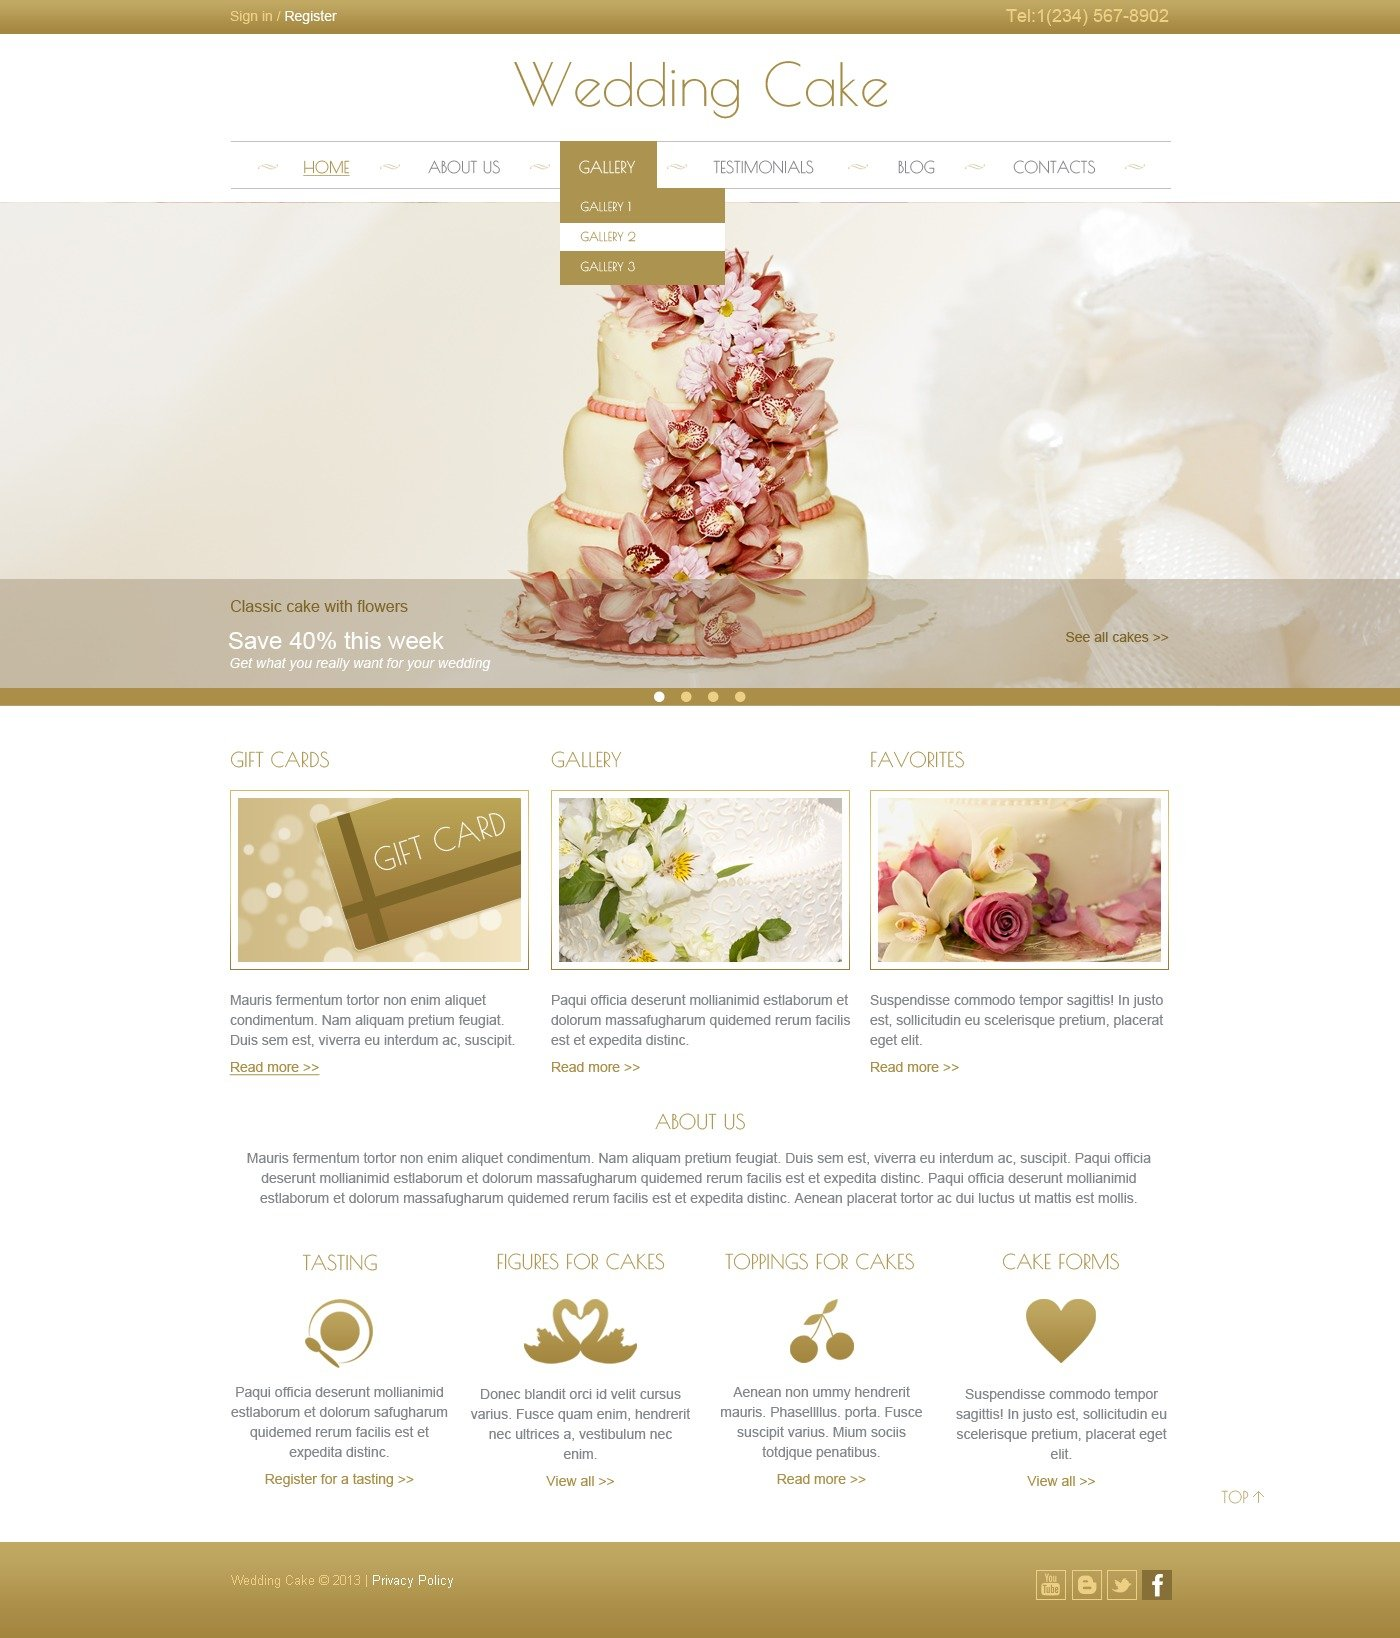 wedding cake site wedding cake joomla template 44444 24804